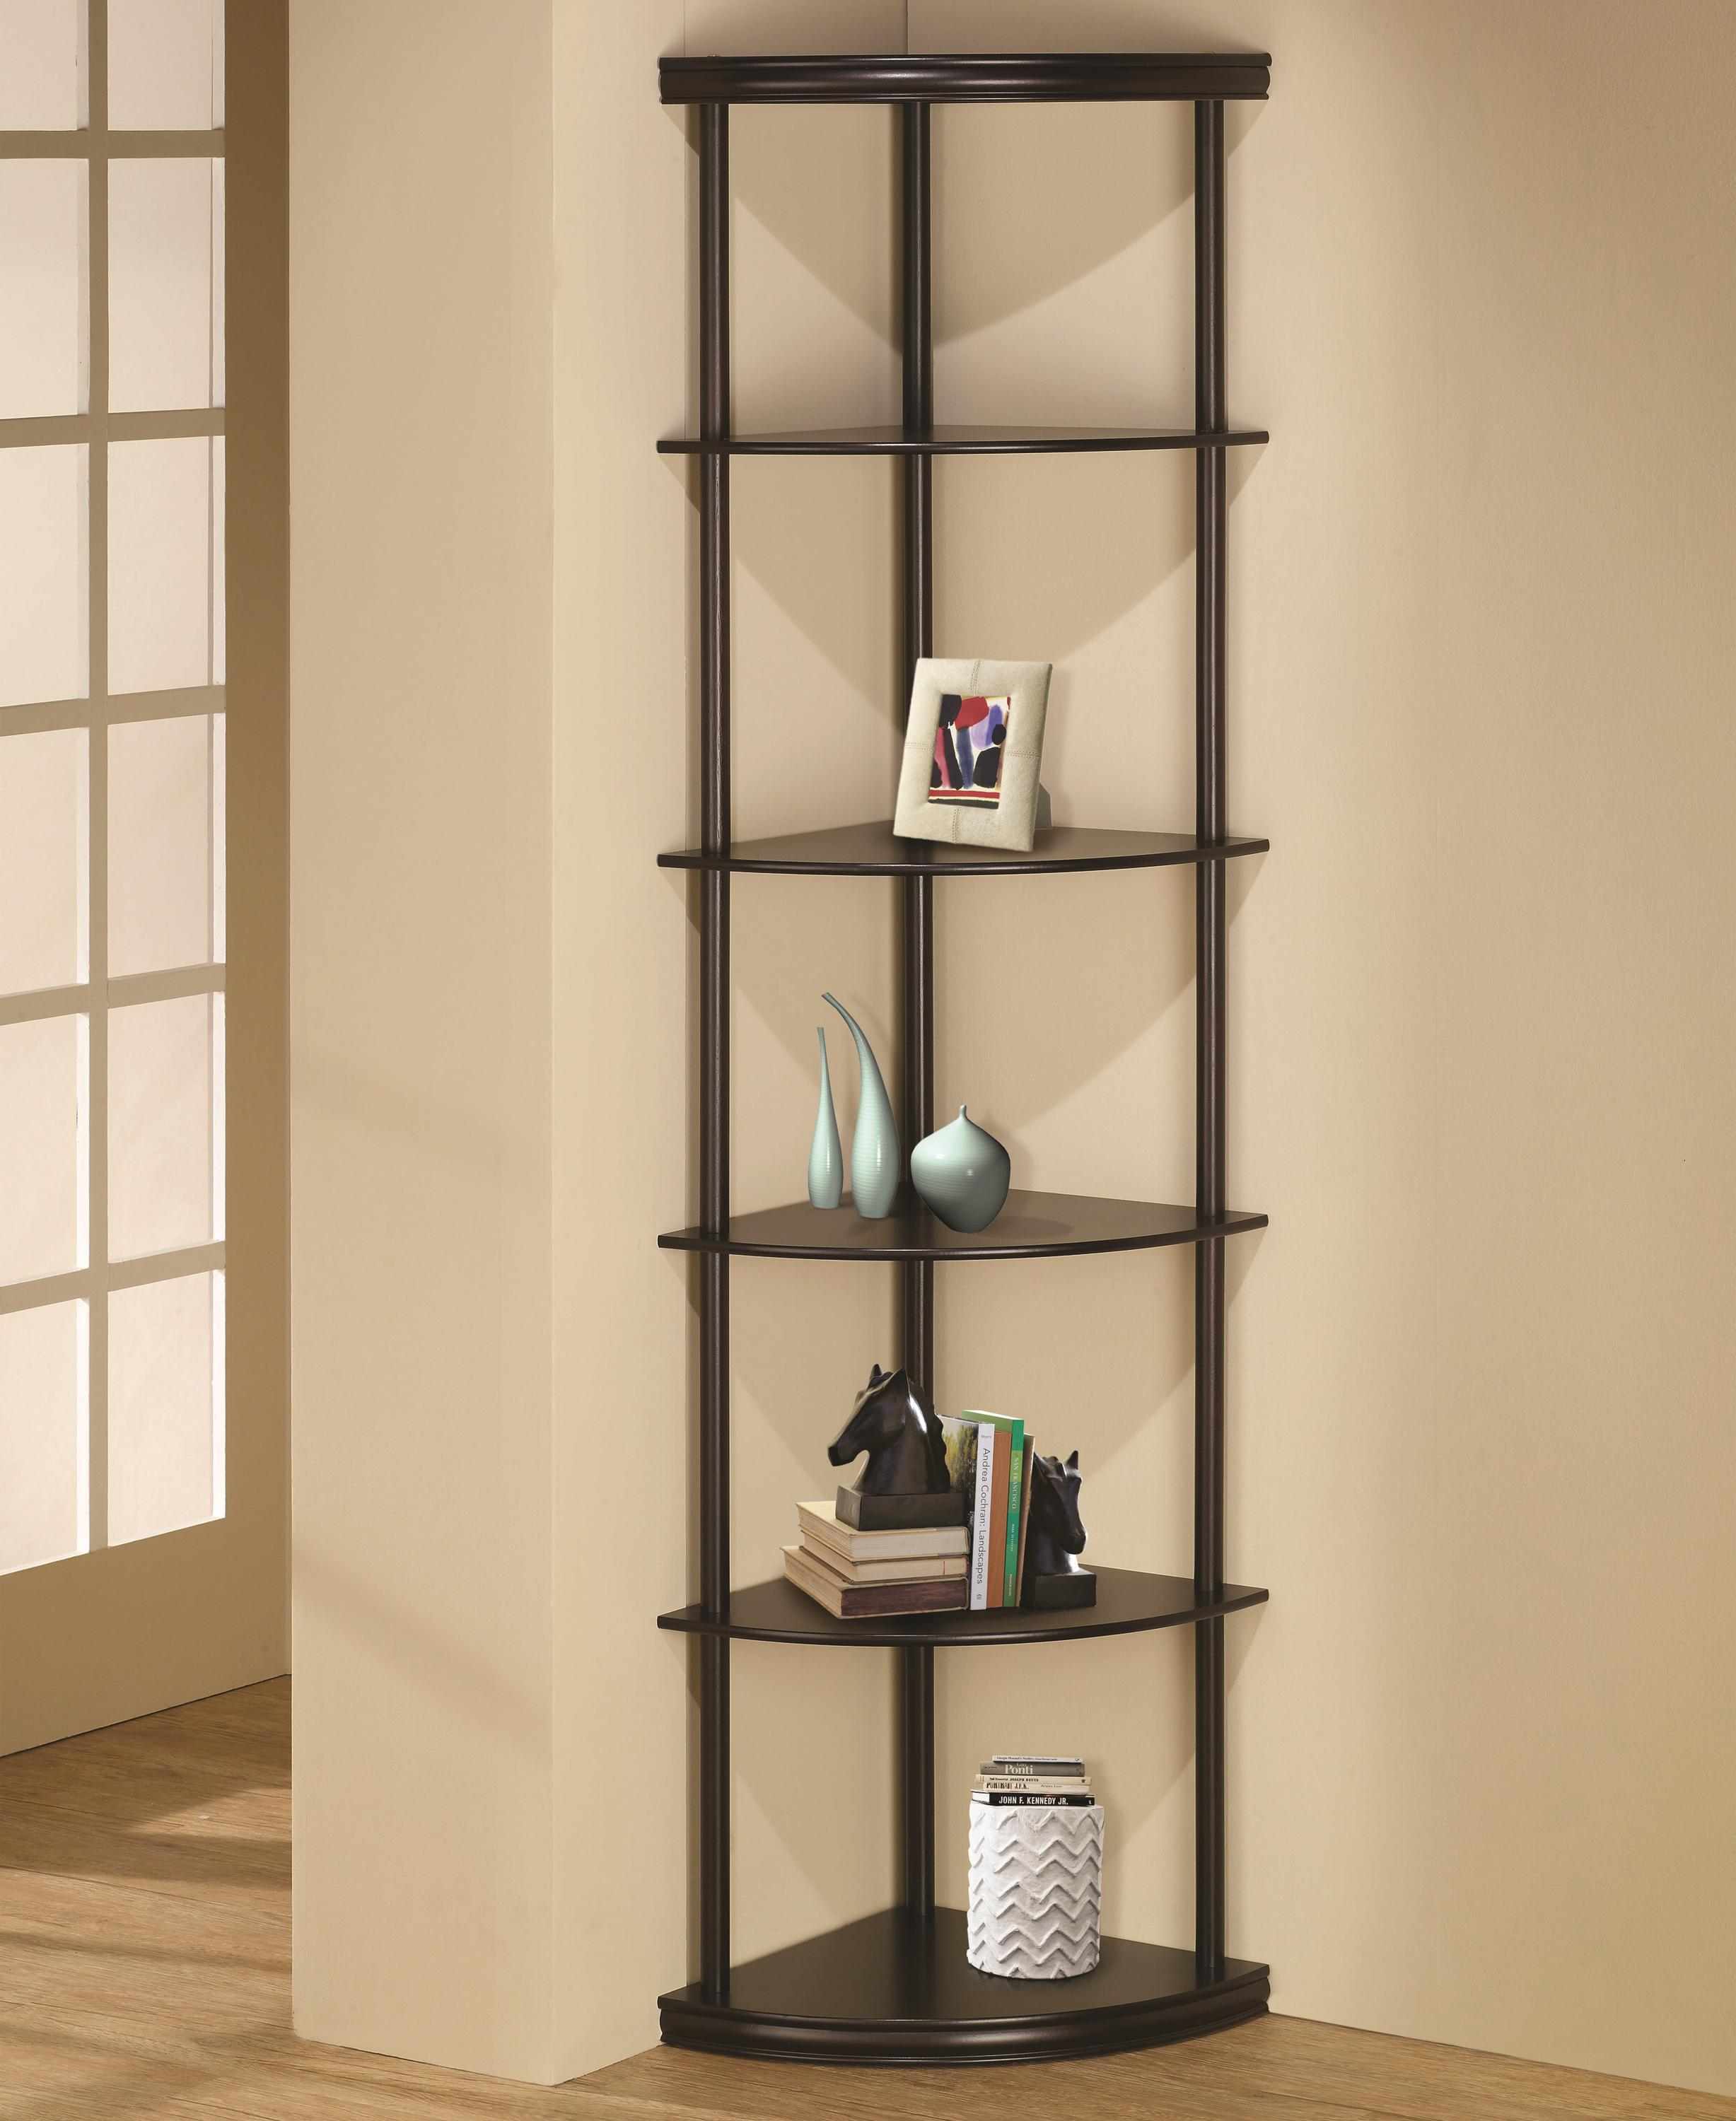 Coaster Bookcases Corner Bookshelf - Item Number: 800279